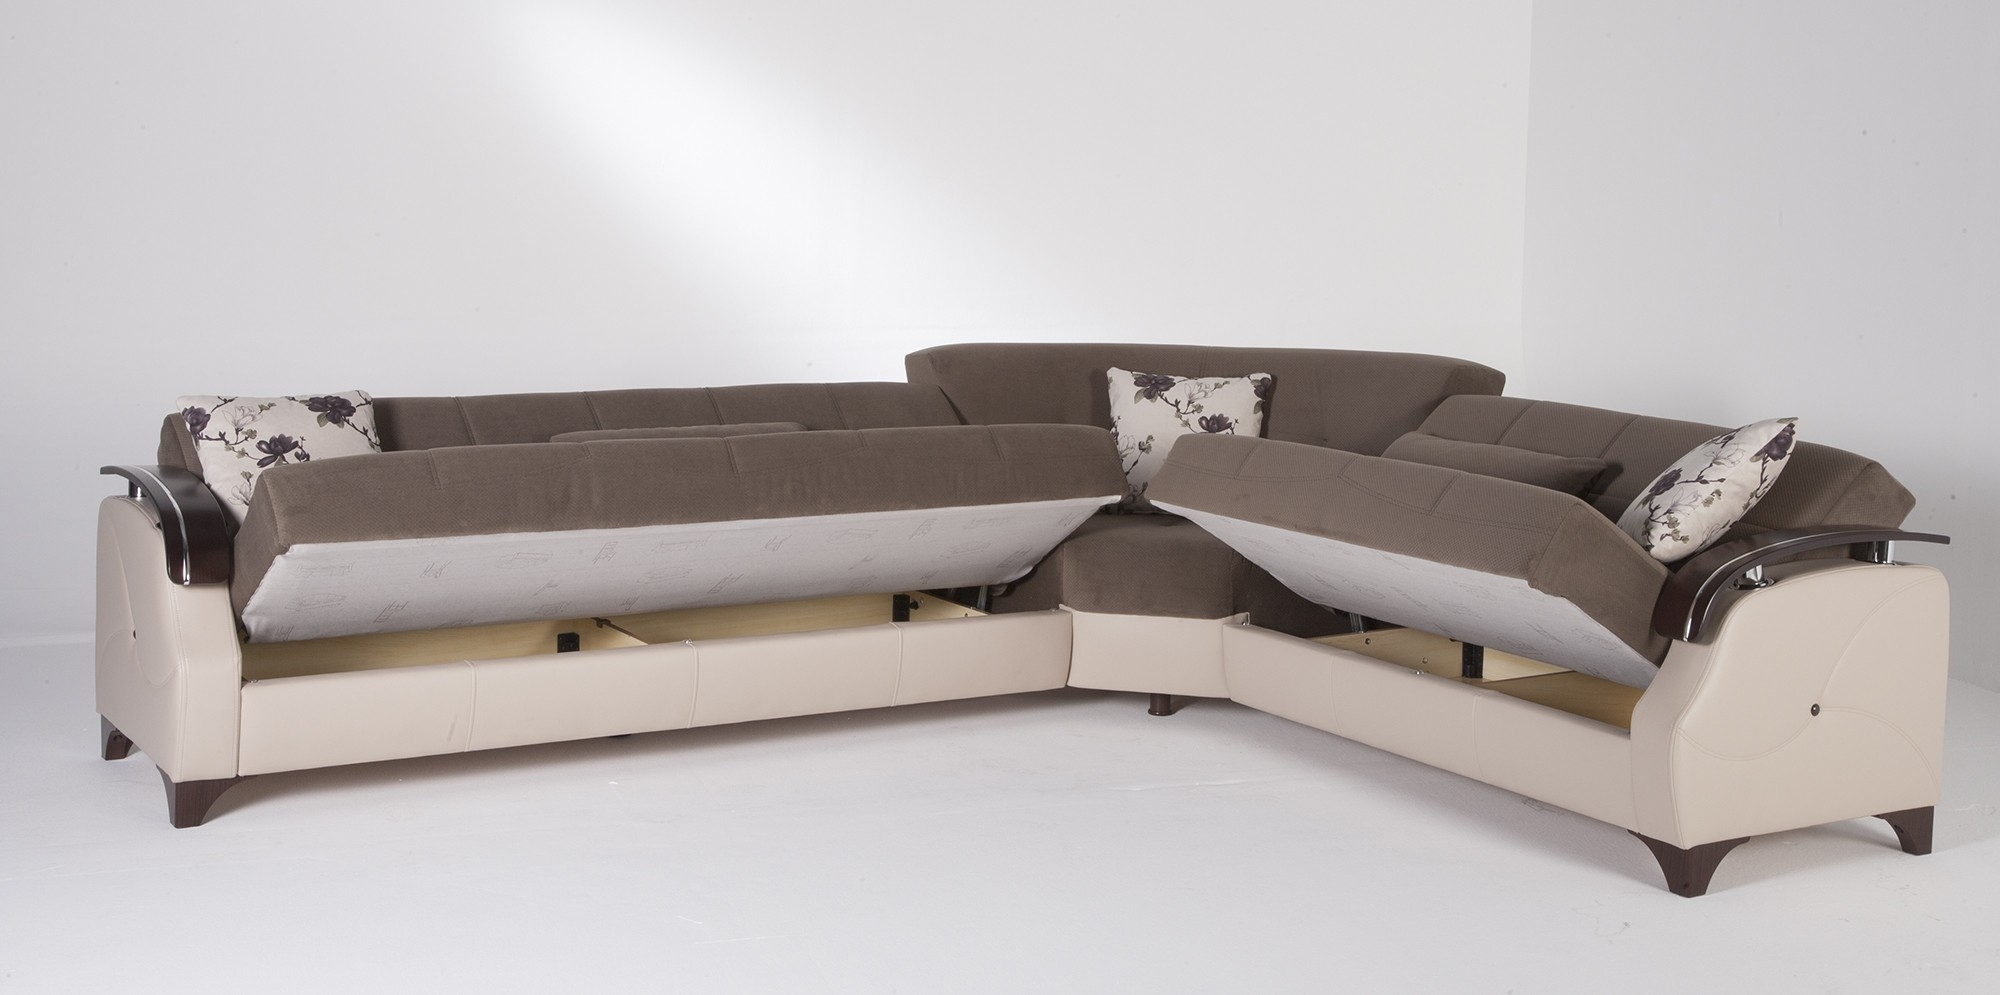 Sectional Sofa Design: Cheap Sectional Sofas Furniture Design Stock Regarding L Shaped Sectional Sleeper Sofas (Image 7 of 10)